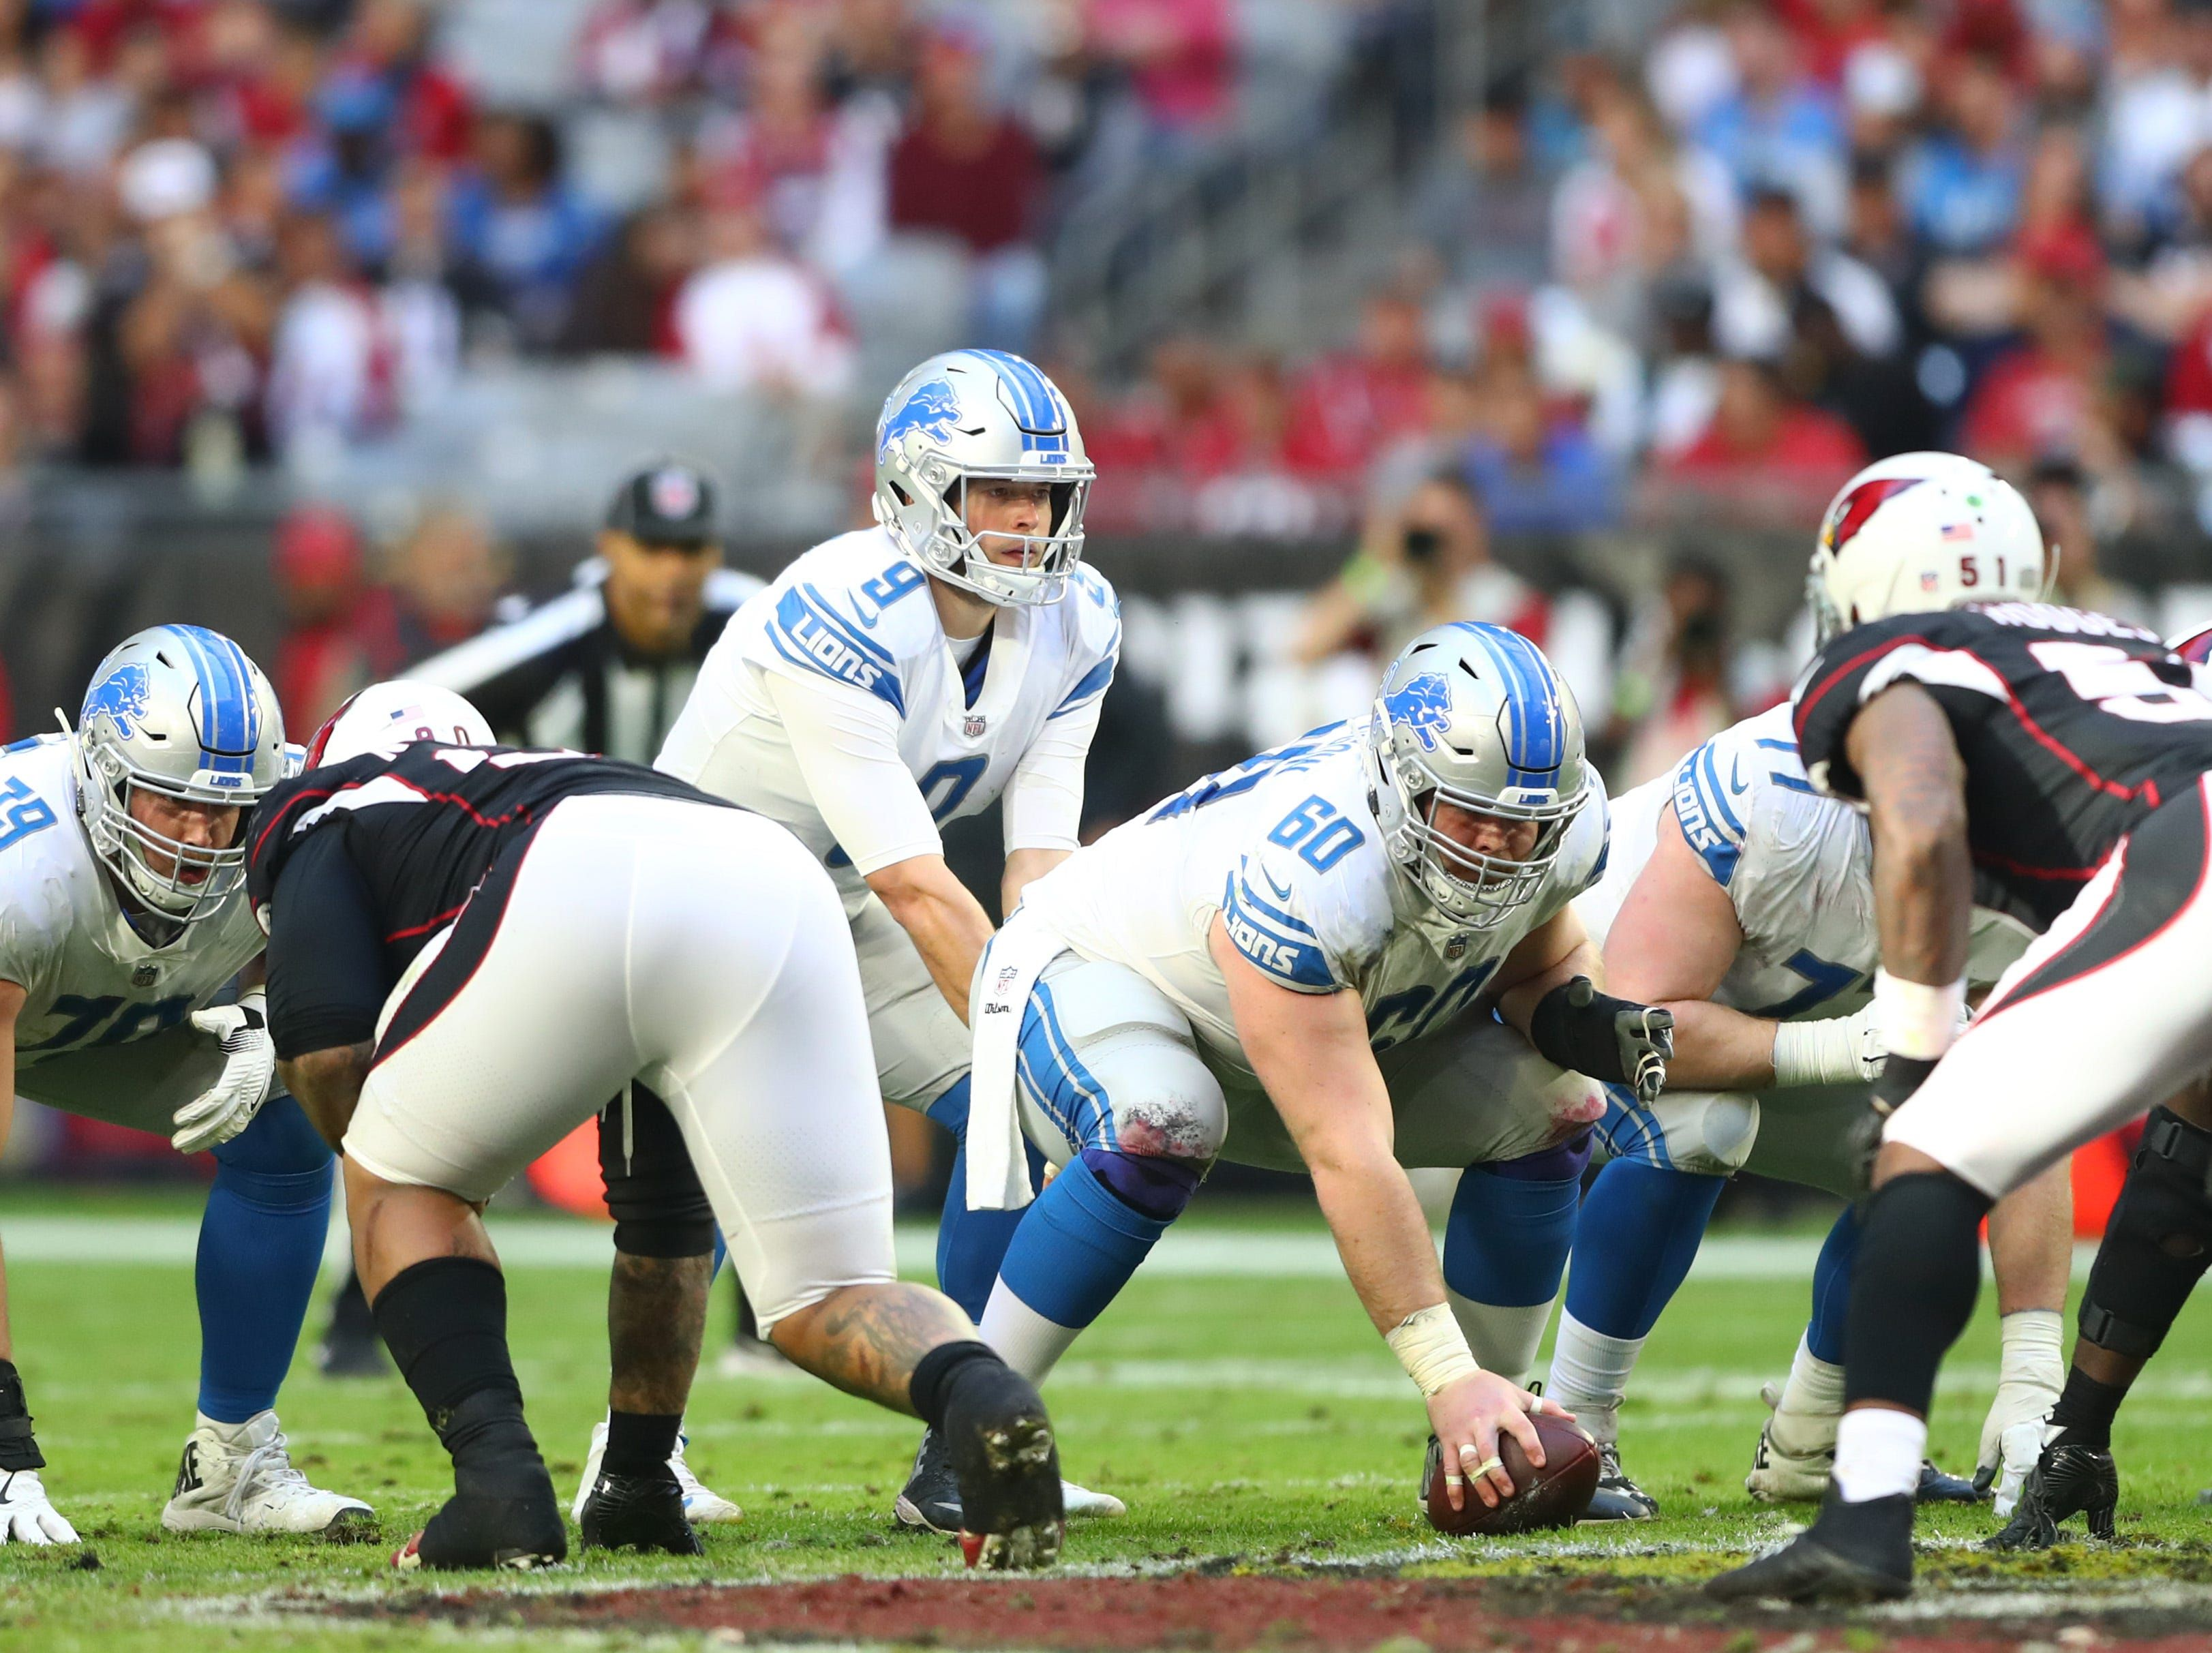 Blog recap lions and cardinals tie at 27 in crazy finish